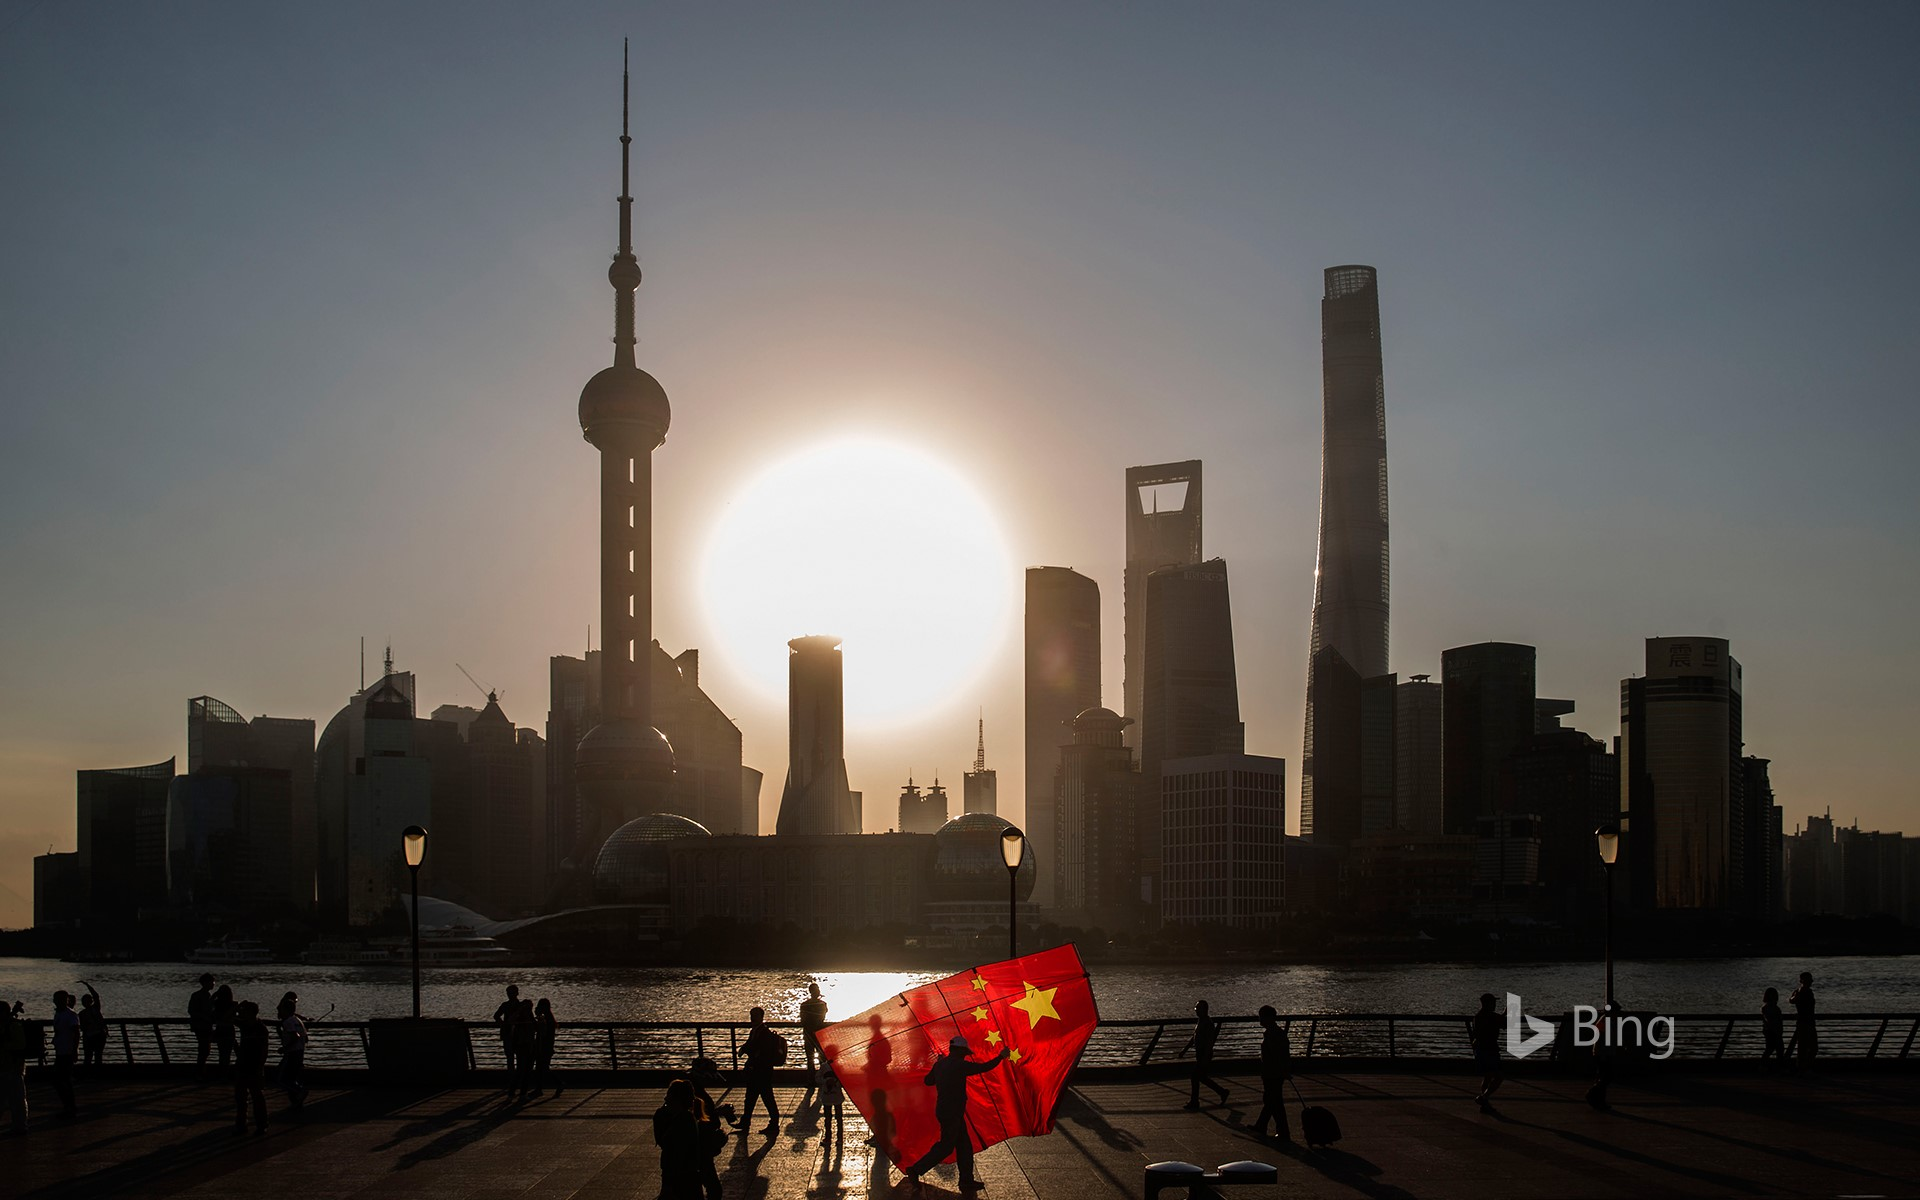 [National Day Today] People flying kite flags, Shanghai, China